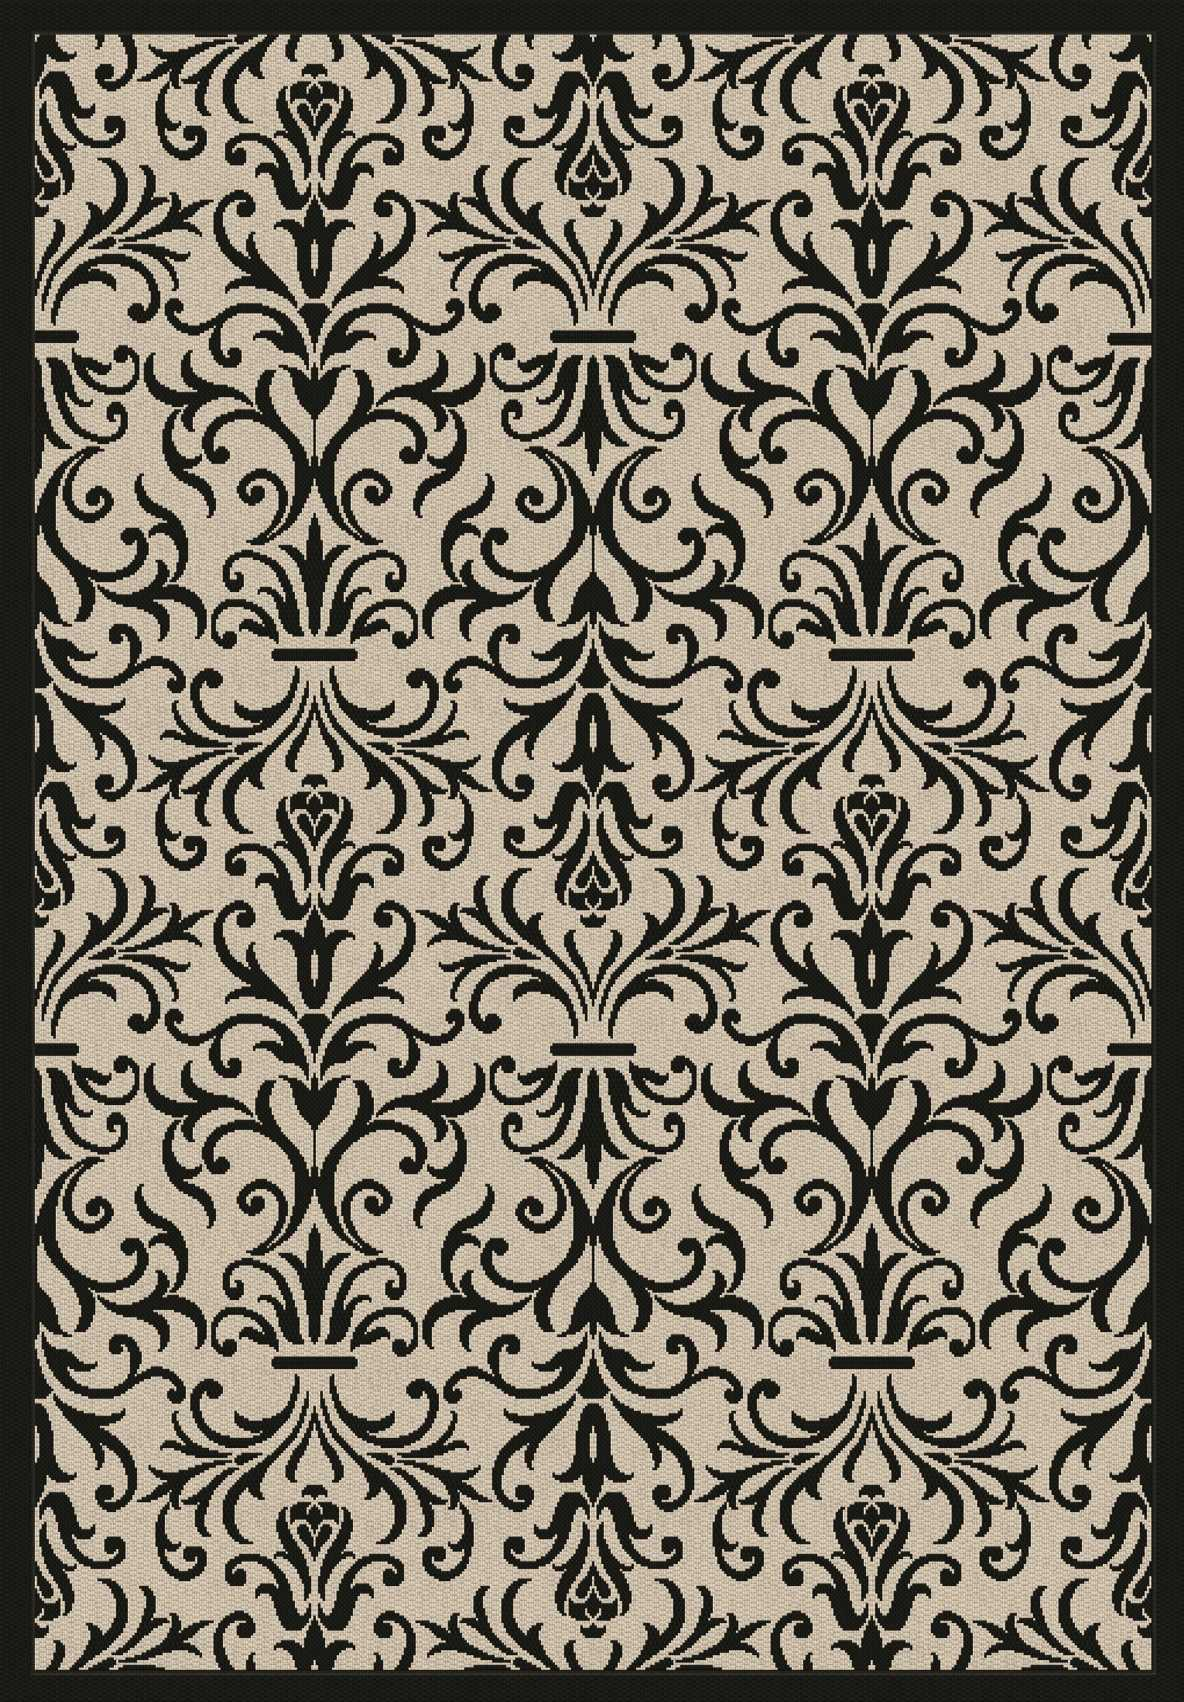 Dynamic Rugs Piazza Medallion/damask Sand/black 2742 Area Rug